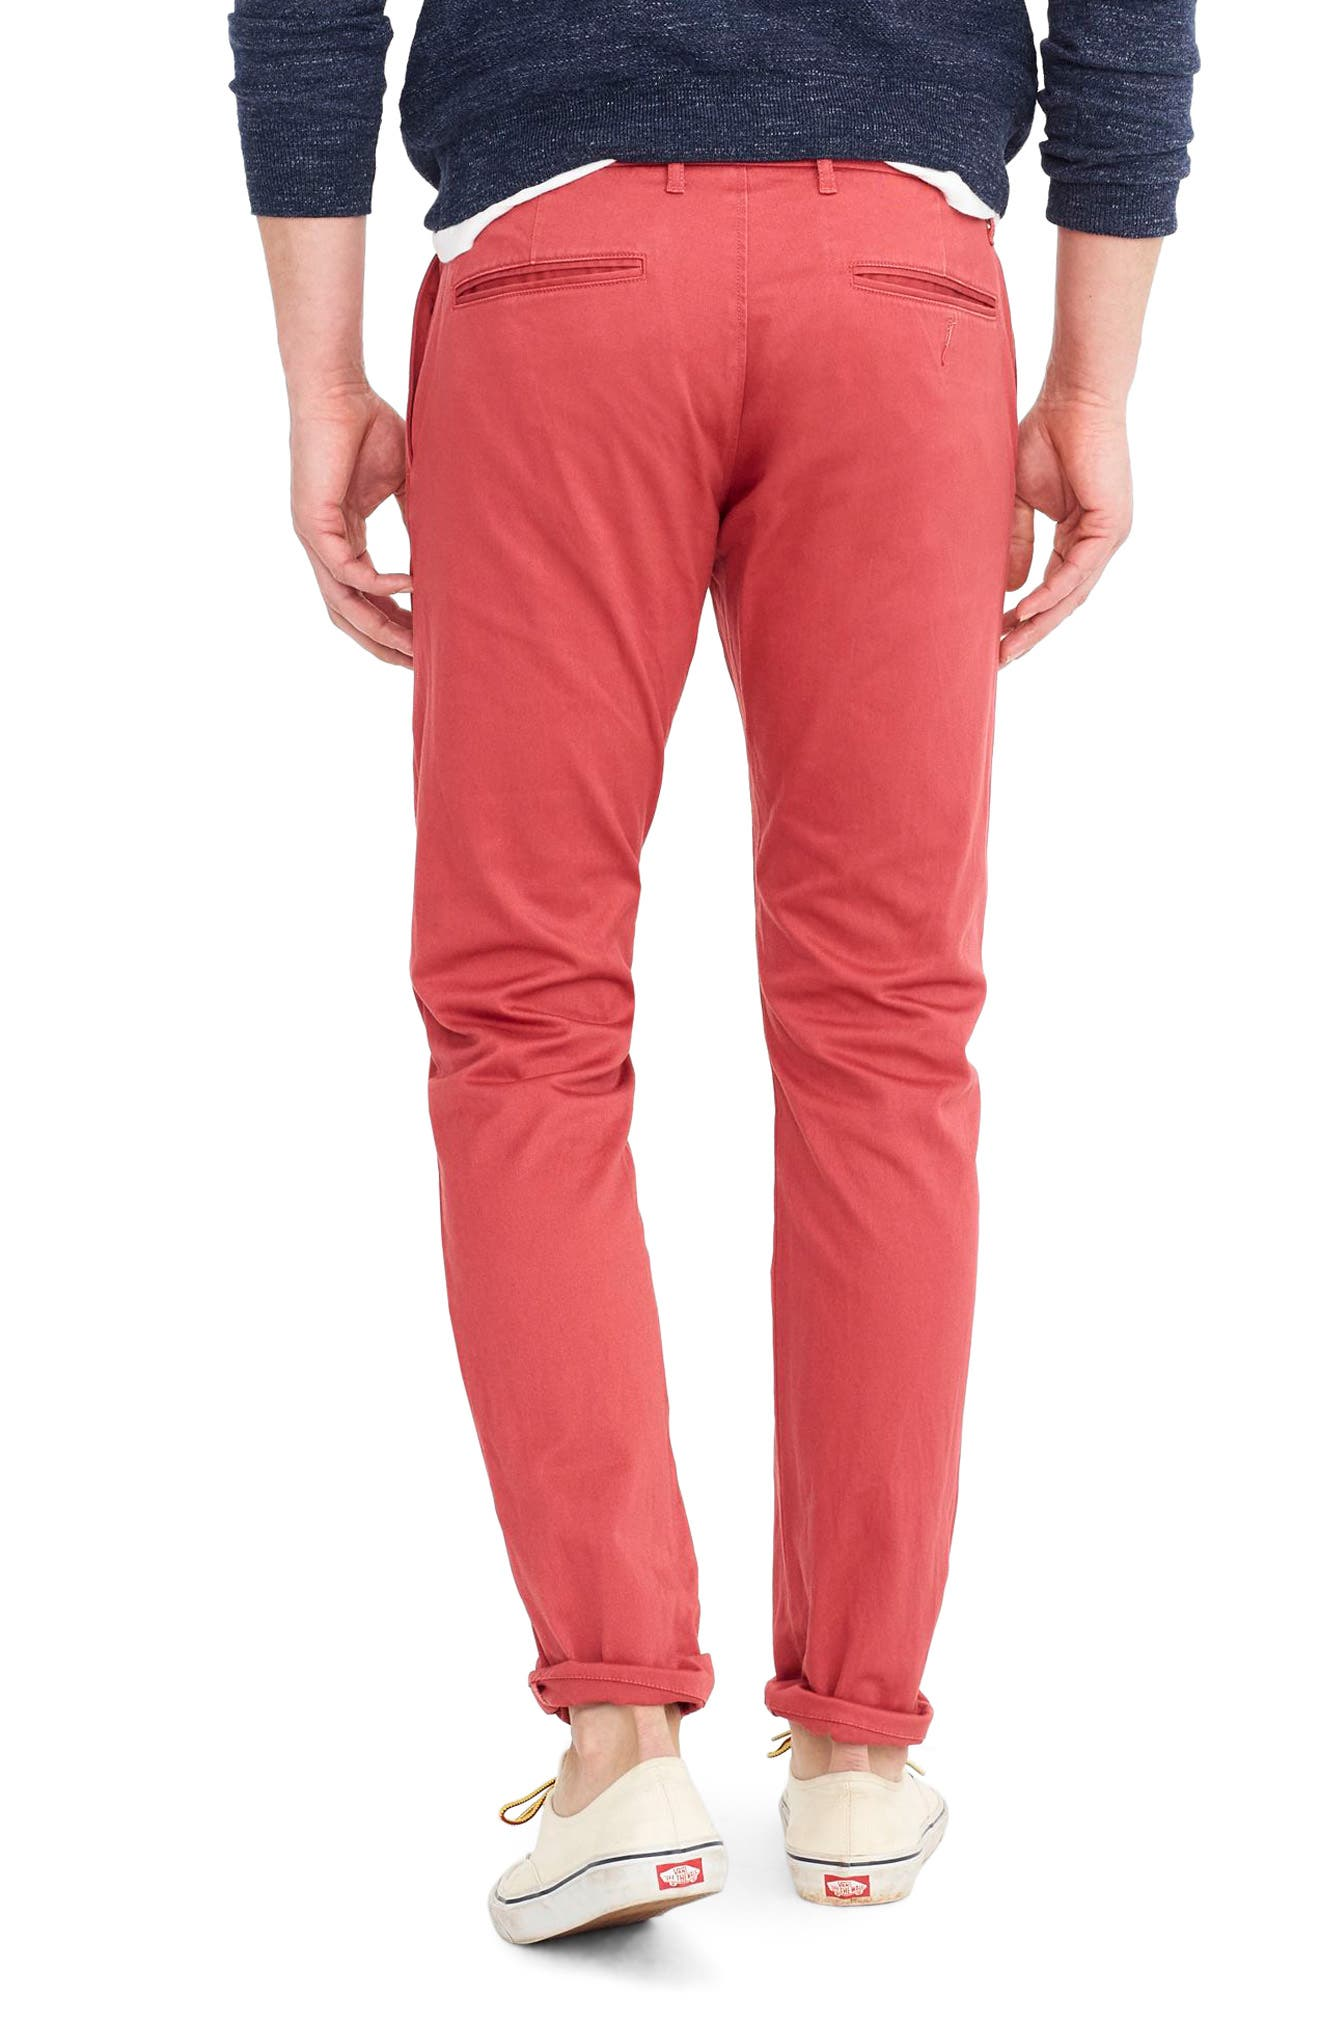 484 Slim Fit Stretch Chino Pants,                             Alternate thumbnail 22, color,